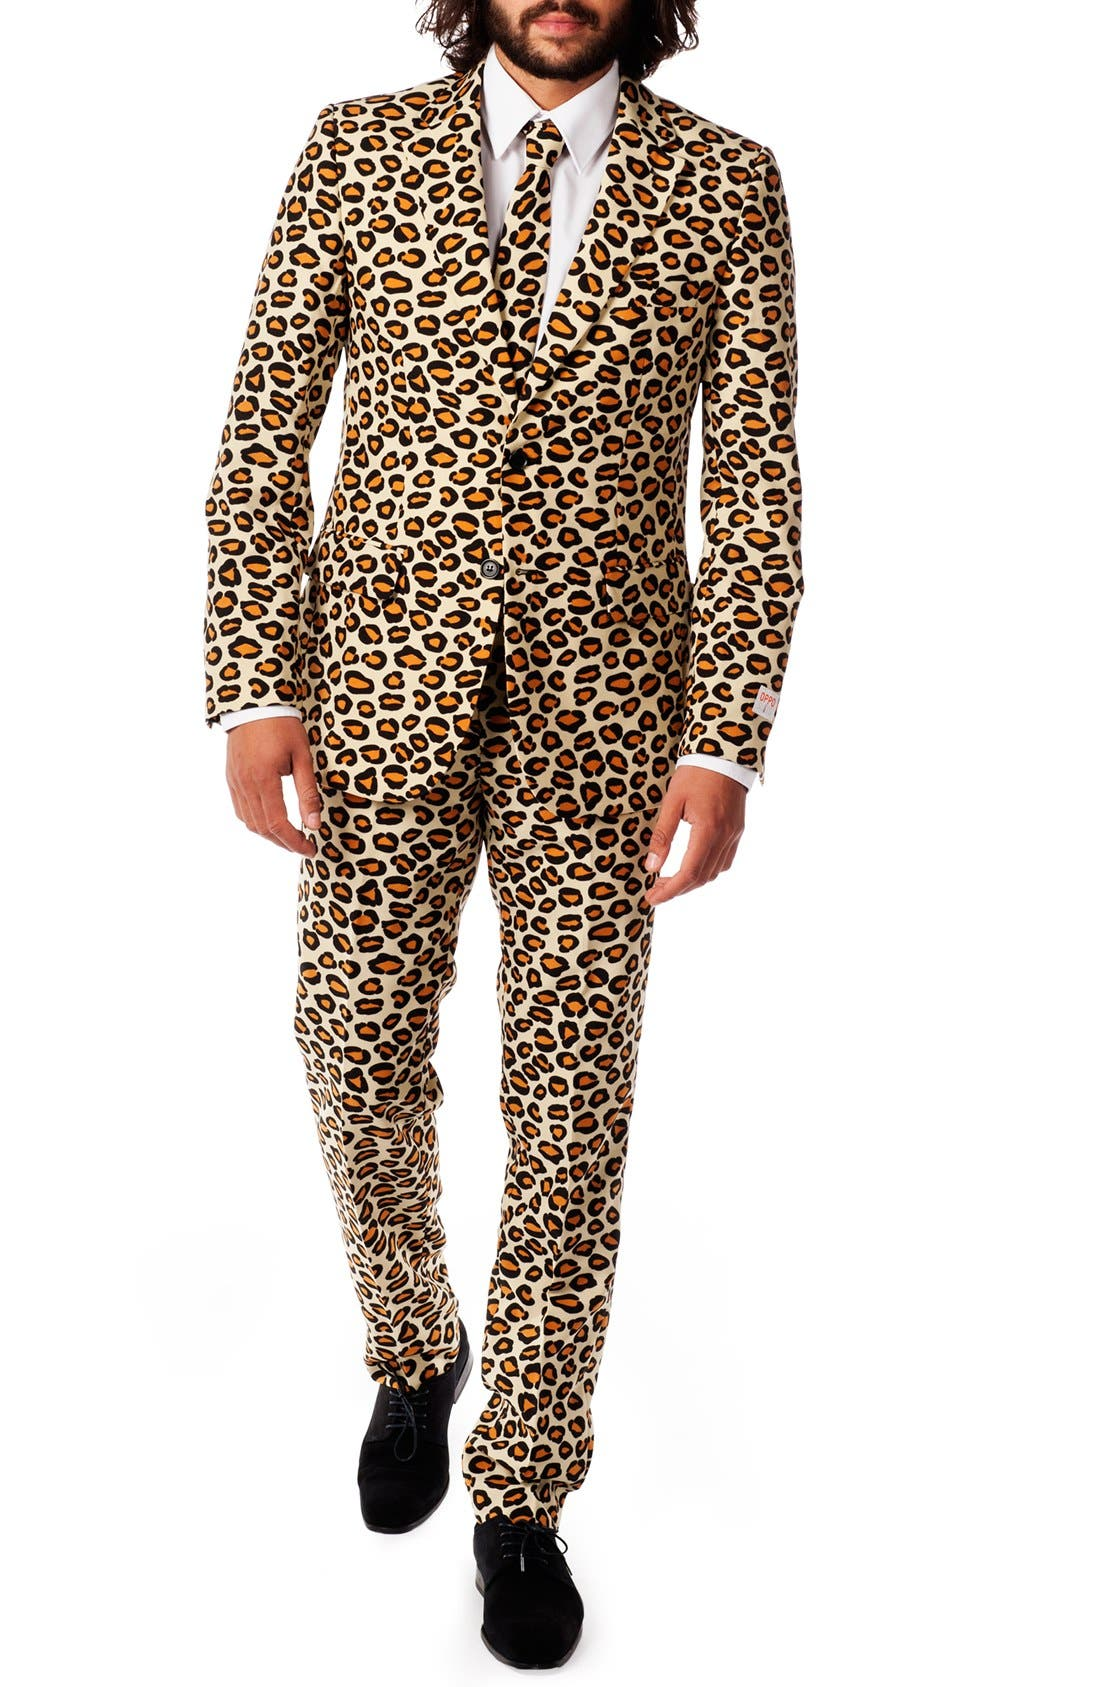 Alternate Image 1 Selected - OppoSuits 'The Jag' Trim Fit Two-Piece Suit with Tie